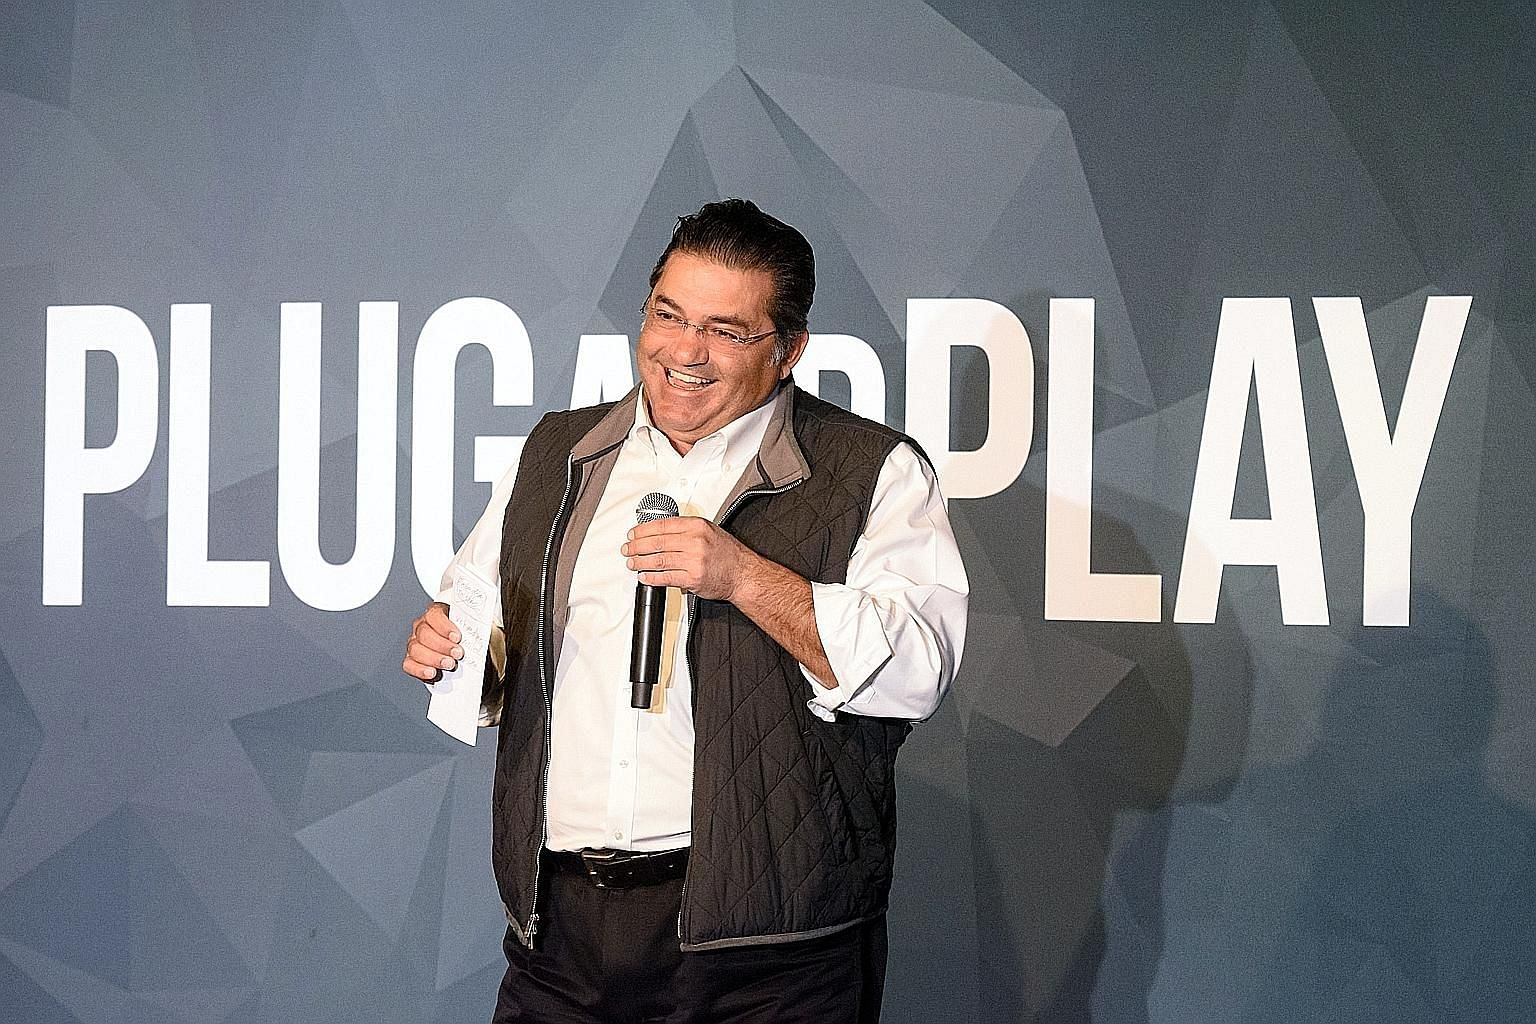 Mr Saeed Amidi started Plug and Play - known in many circles as the world's biggest accelerator - in 2006, when he realised how valuable fostering young companies could be.